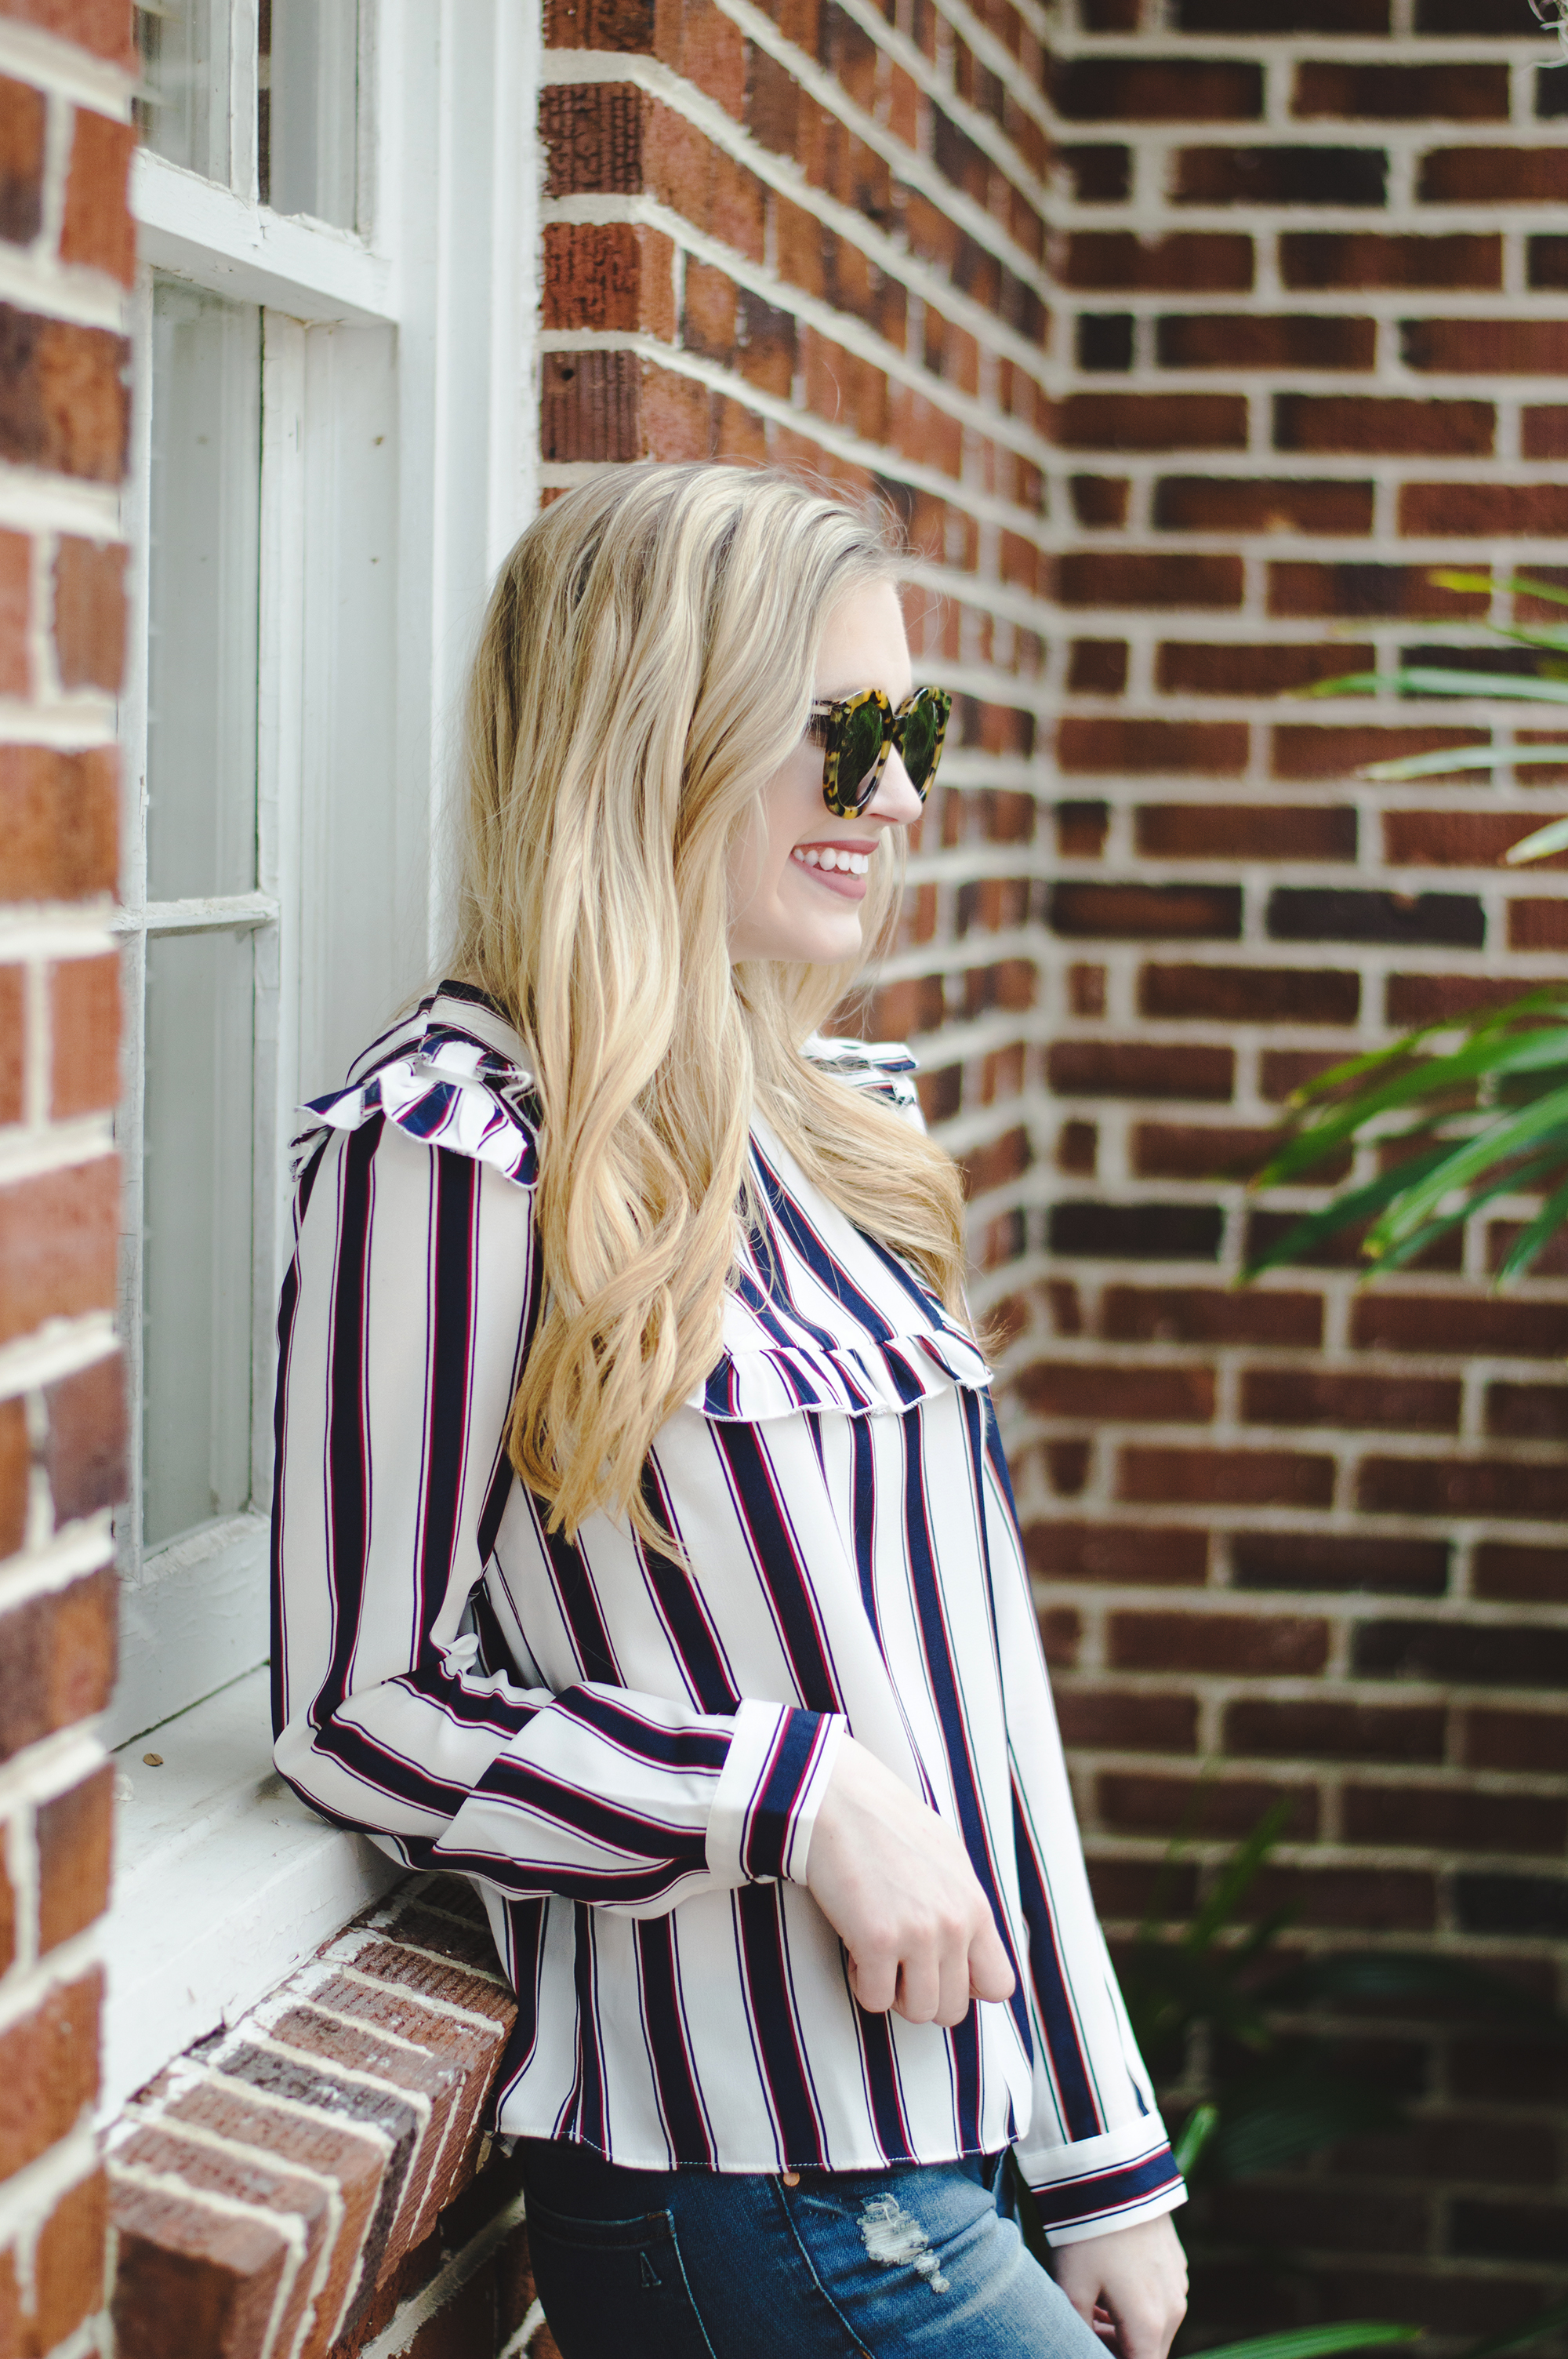 styelled-blog-elle-elisabeth-fashion-style-blogger-fblogger-like-to-know-it-articles-of-society-english-factory-karen-walker-dolce-vita-shop-smac-stripes-17